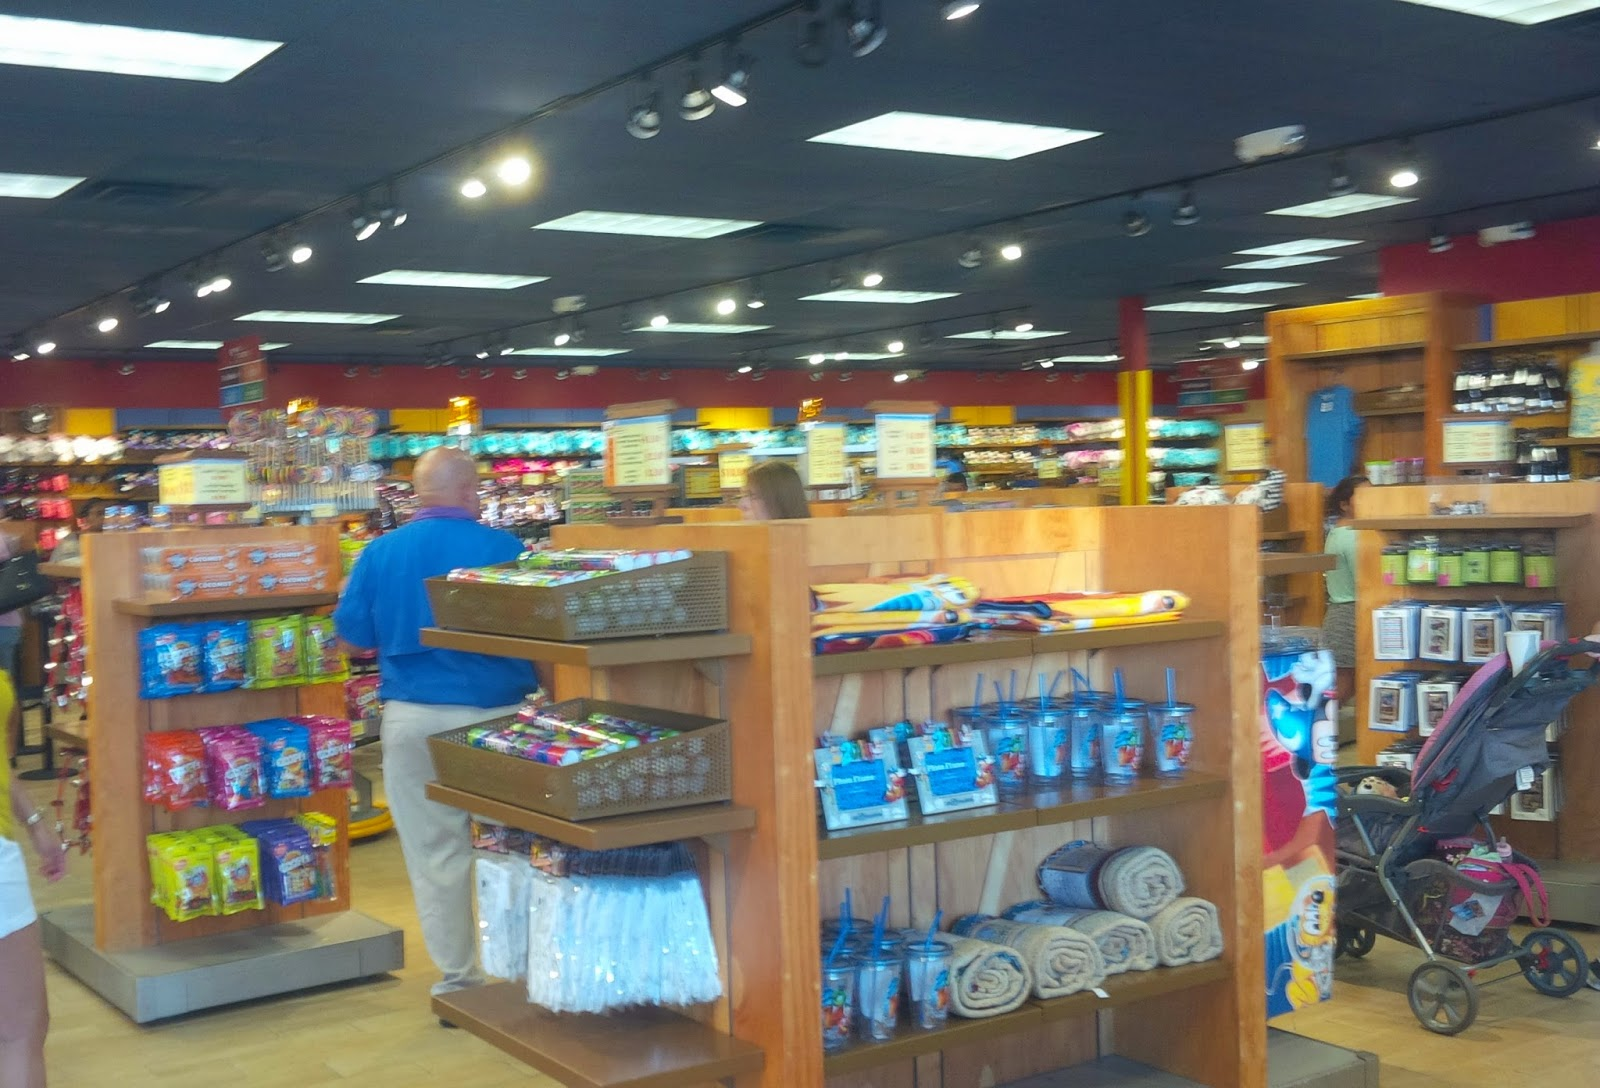 Dec 04,  · The Disney outlet in gilroy is set up just like a regular Disney store, except with highly discounted items. A regular Disney store has t-shirts for women priced around $25 while the Disney outlet has them priced for $ Kids shirts are $7 which is a steal!4/4(30).